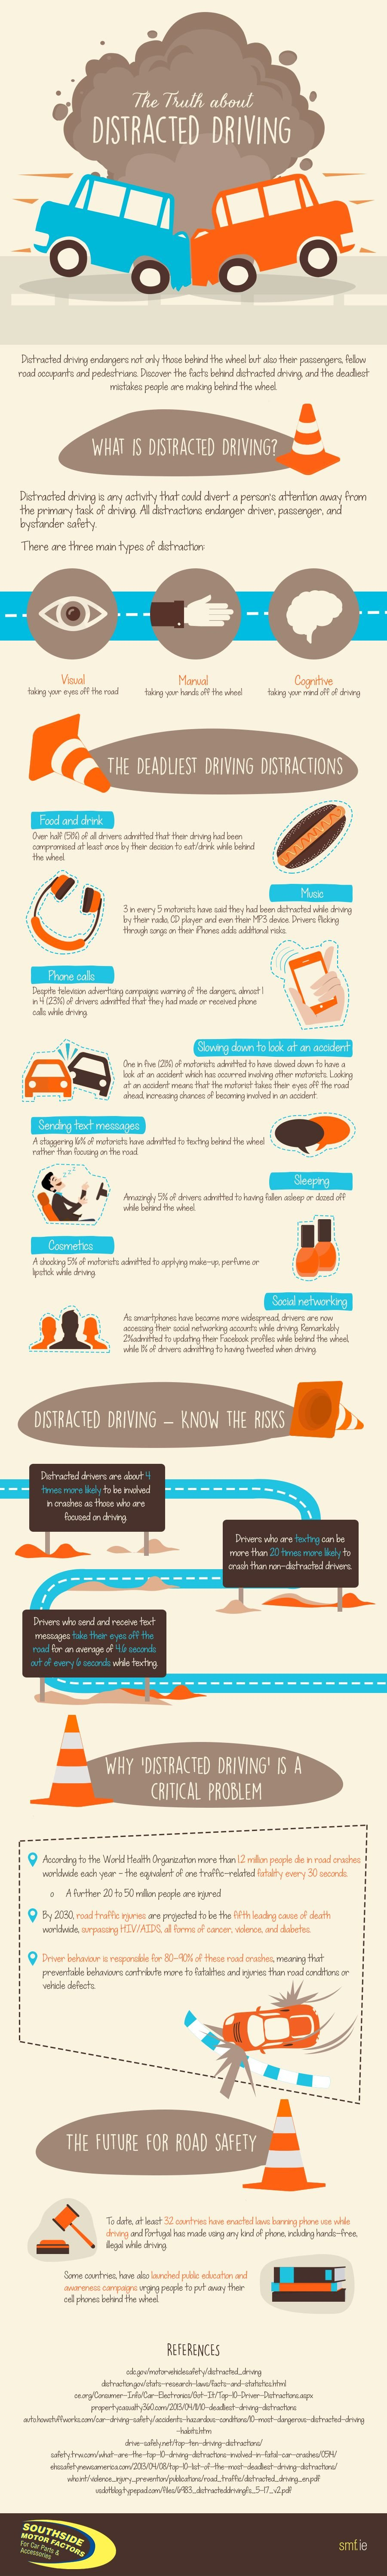 The truth about distracted driving infographic